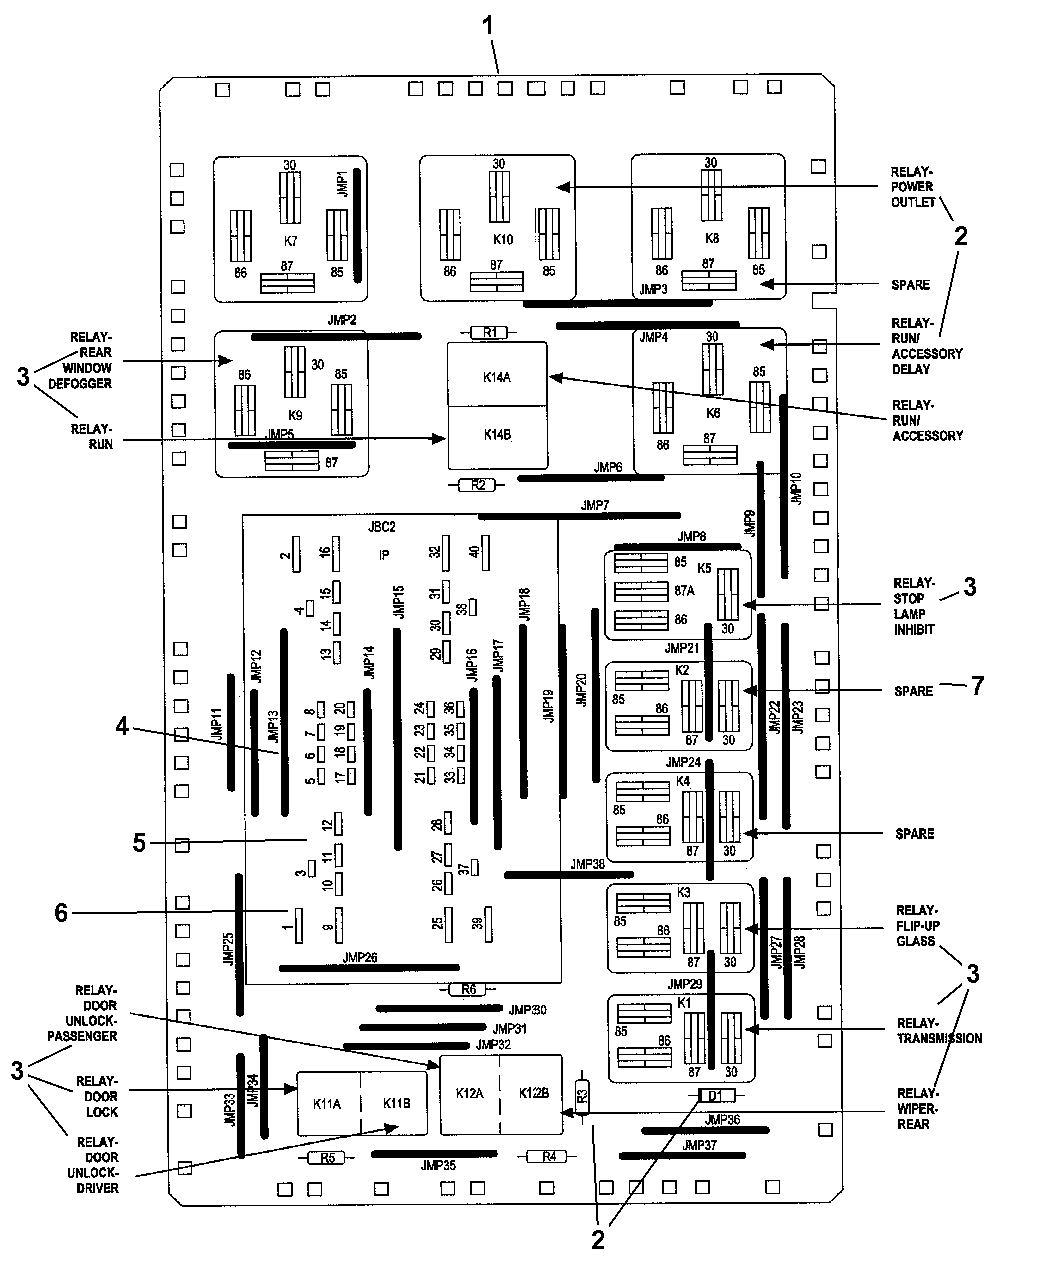 wiring diagram 2005 jeep hemi wiring library 2005 Jeep Cherokee Diagram